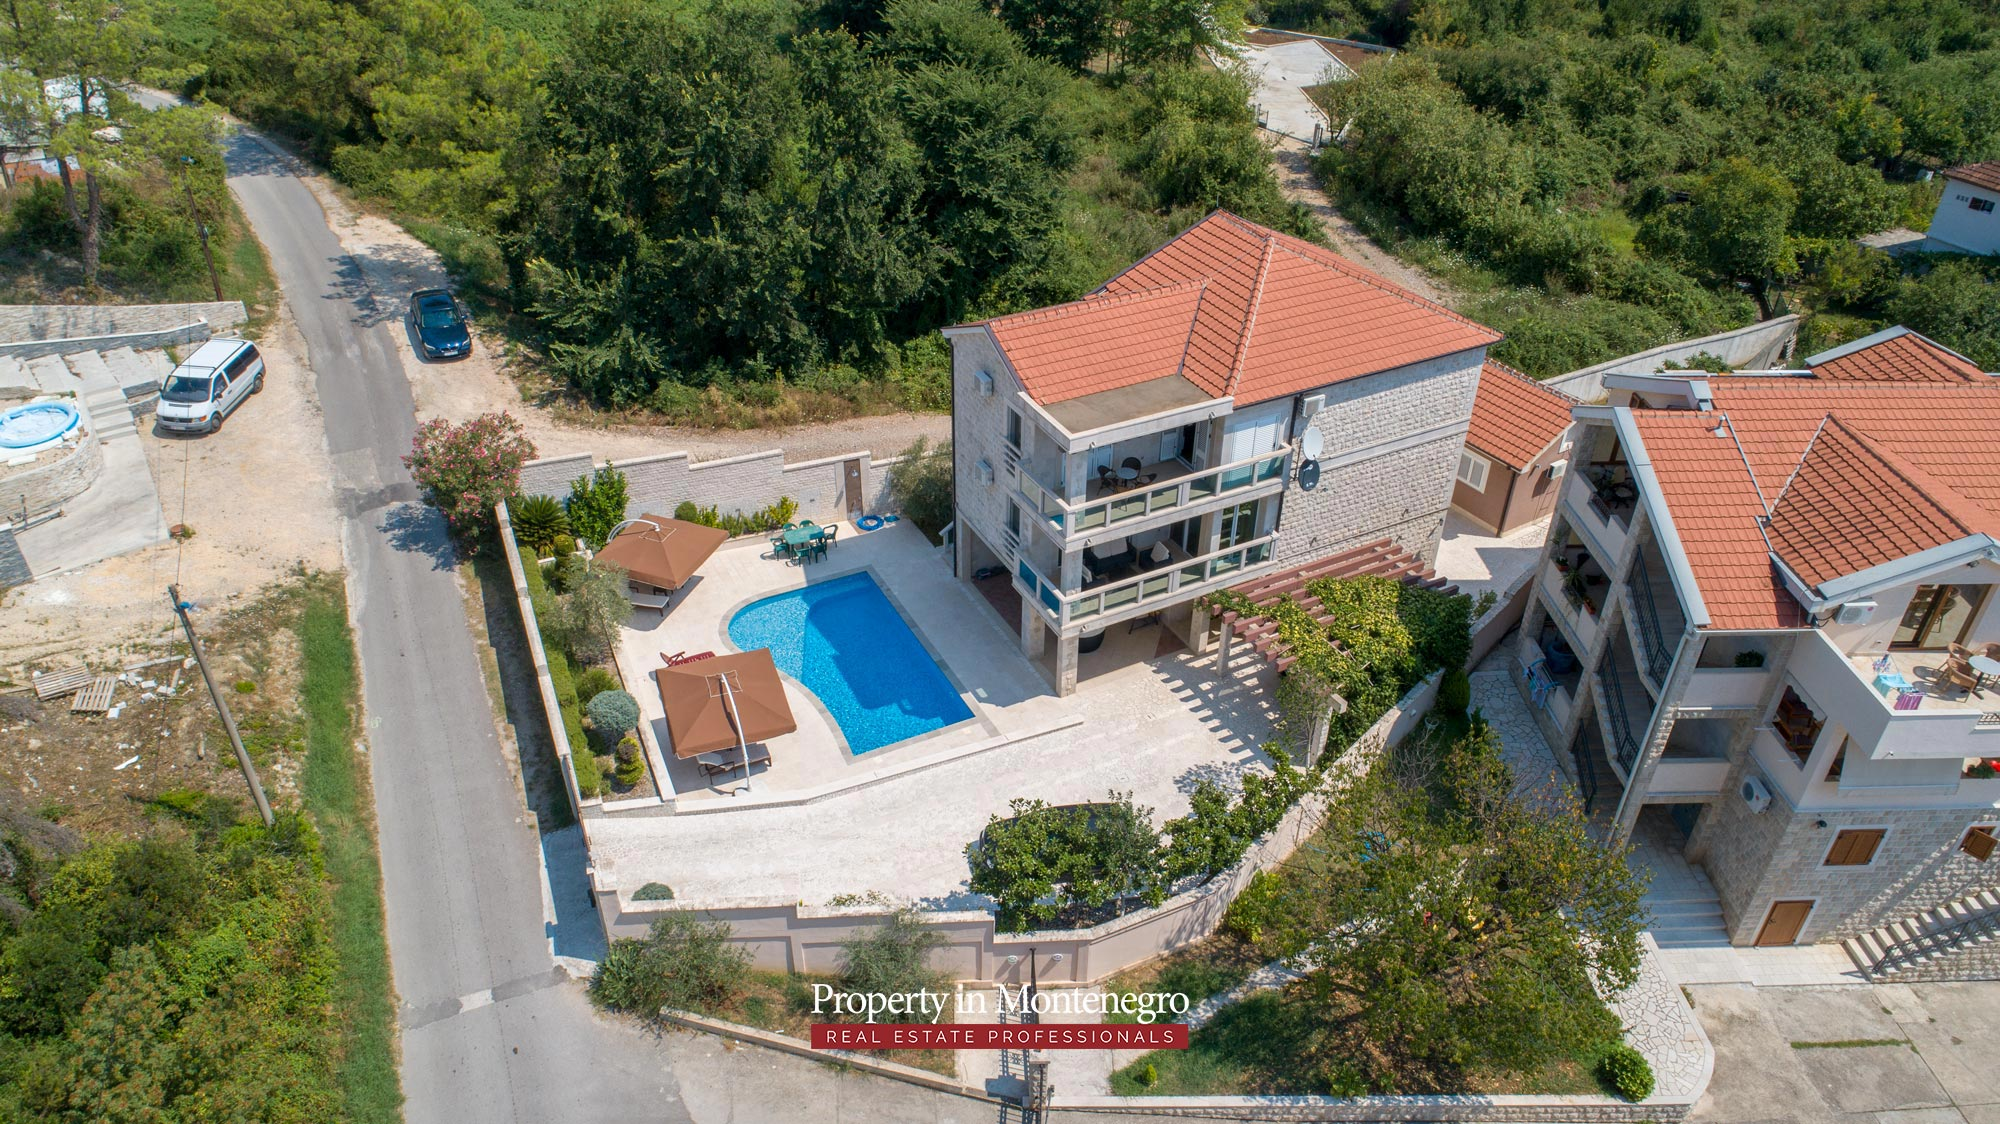 Villa-with-swimming-pool-for-sale-in-Tivat (8).jpg